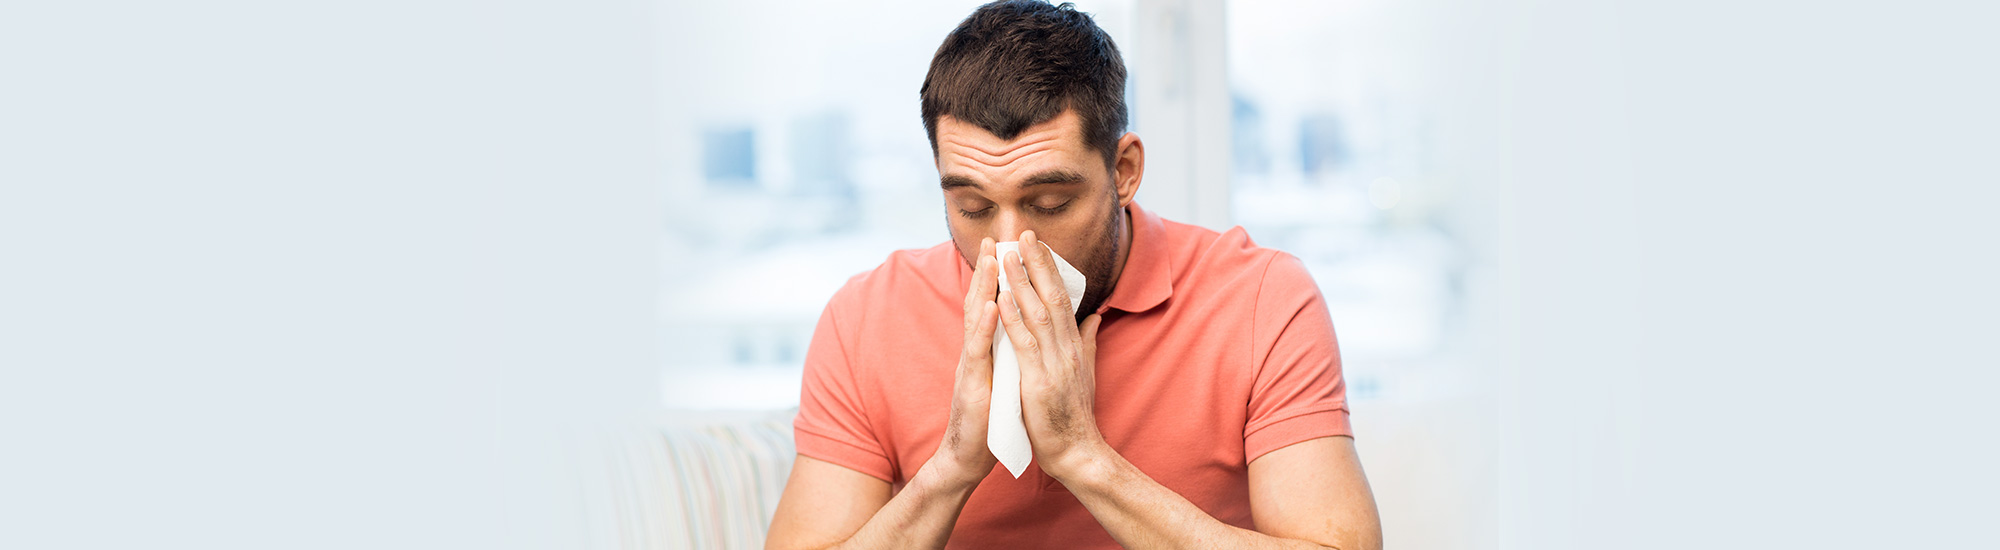 Ayurvedic treatment for Allergic Rhinitis Treatment In Ayurveda